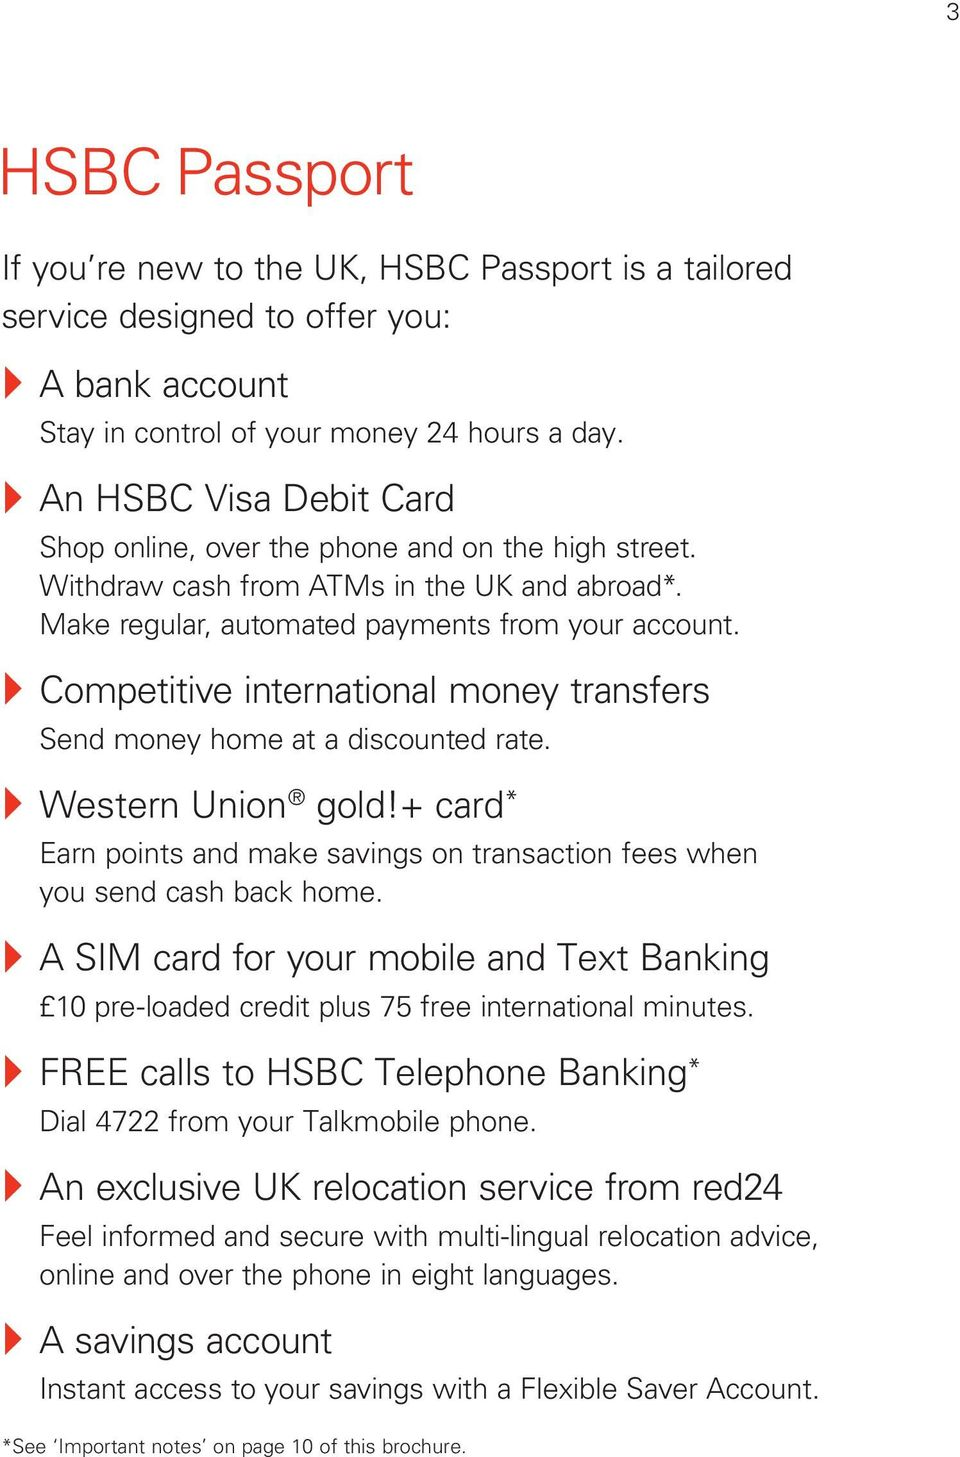 Welcome to HSBC Passport - PDF